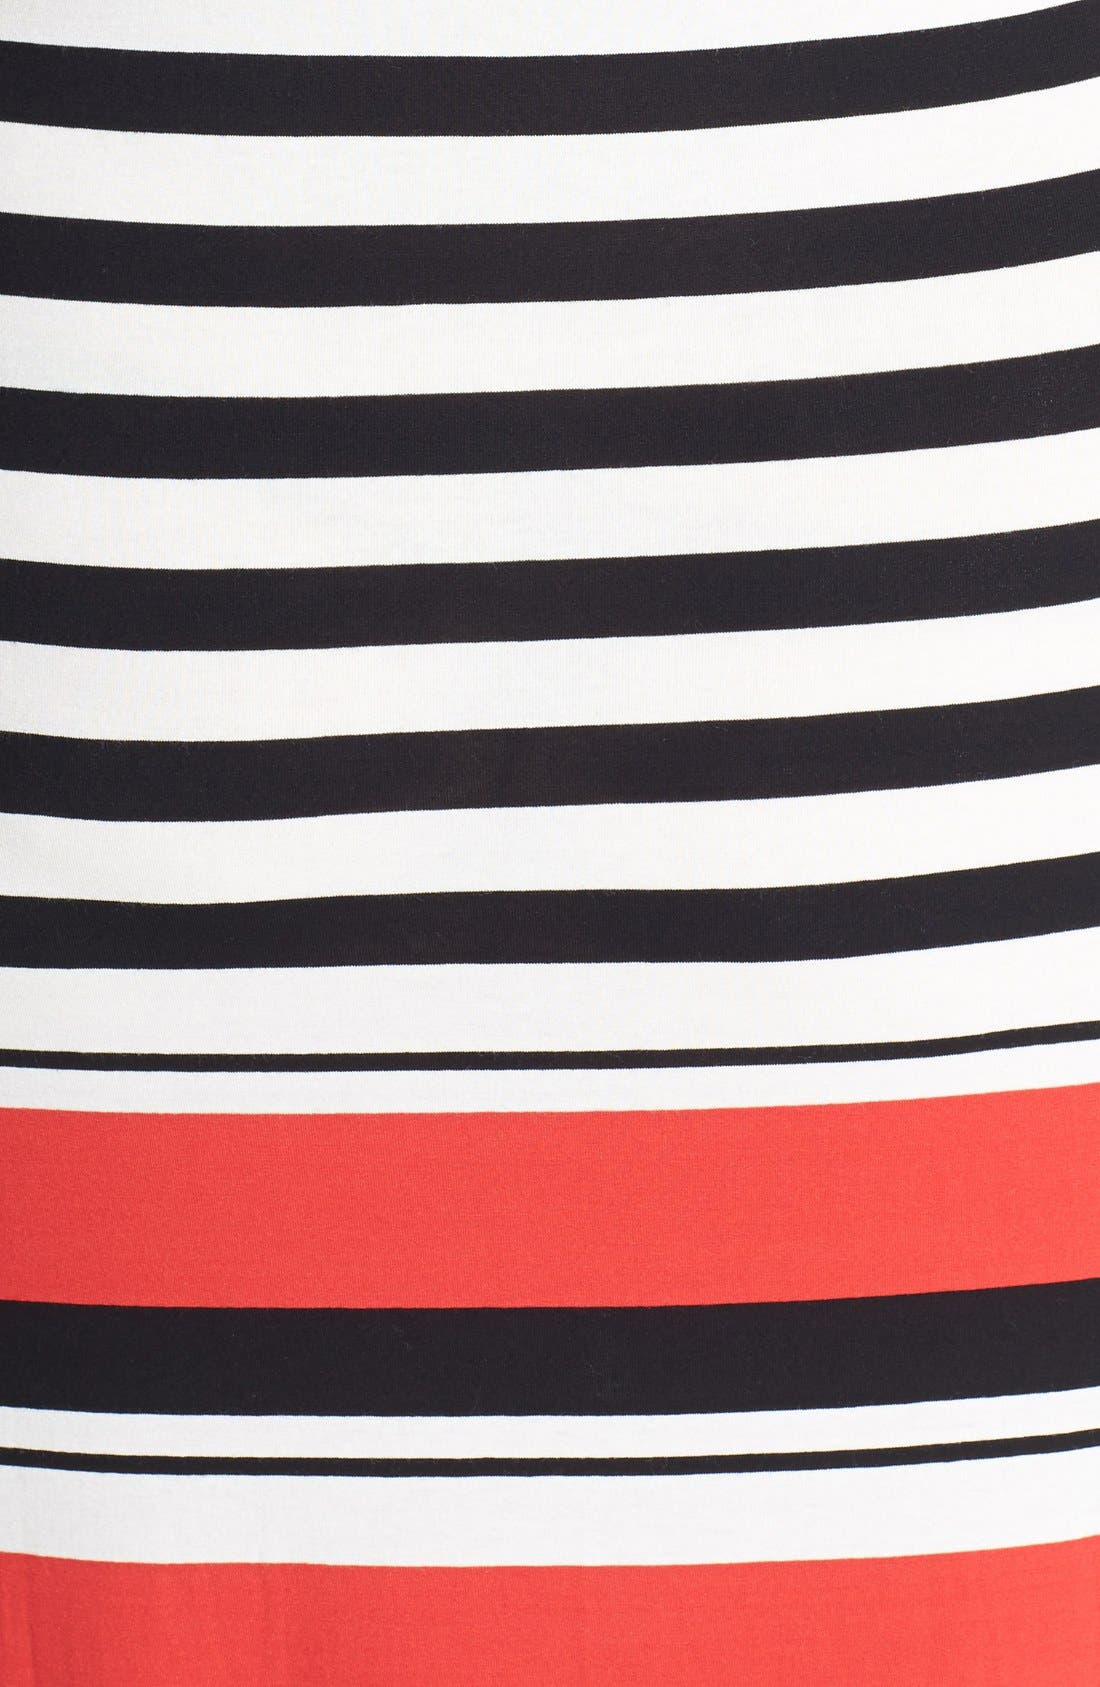 Alternate Image 3  - Vince Camuto Multi Stripe Maxi Dress (Plus Size)